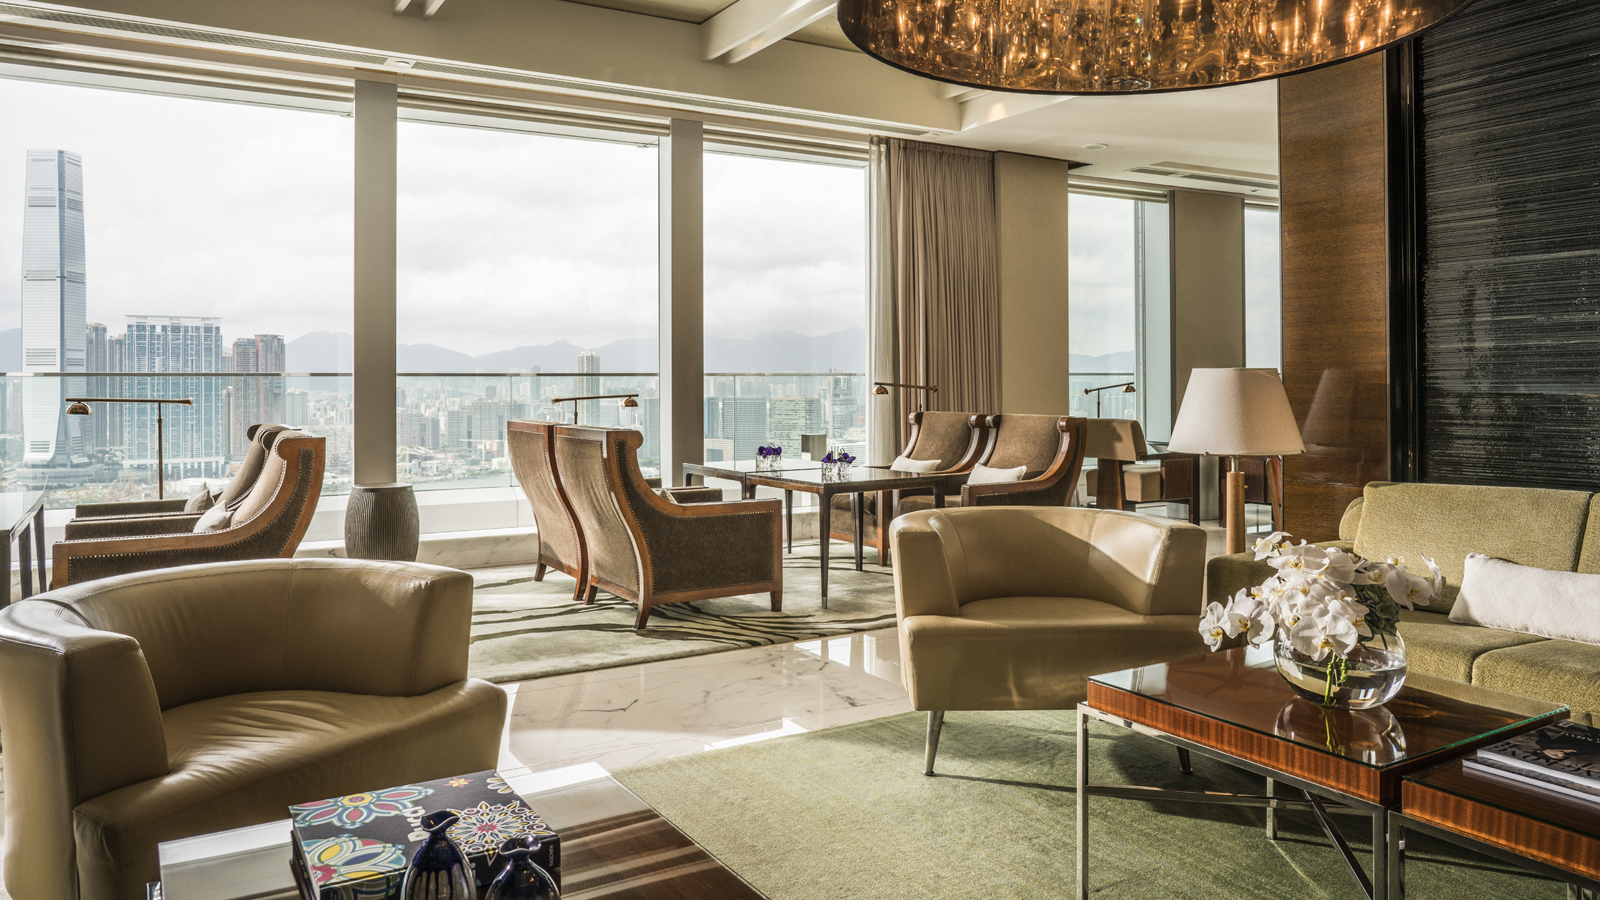 Executive Club Package Offered at Four Seasons Hotel Hong Kong, a 5-Star Hotel in Hong Kong